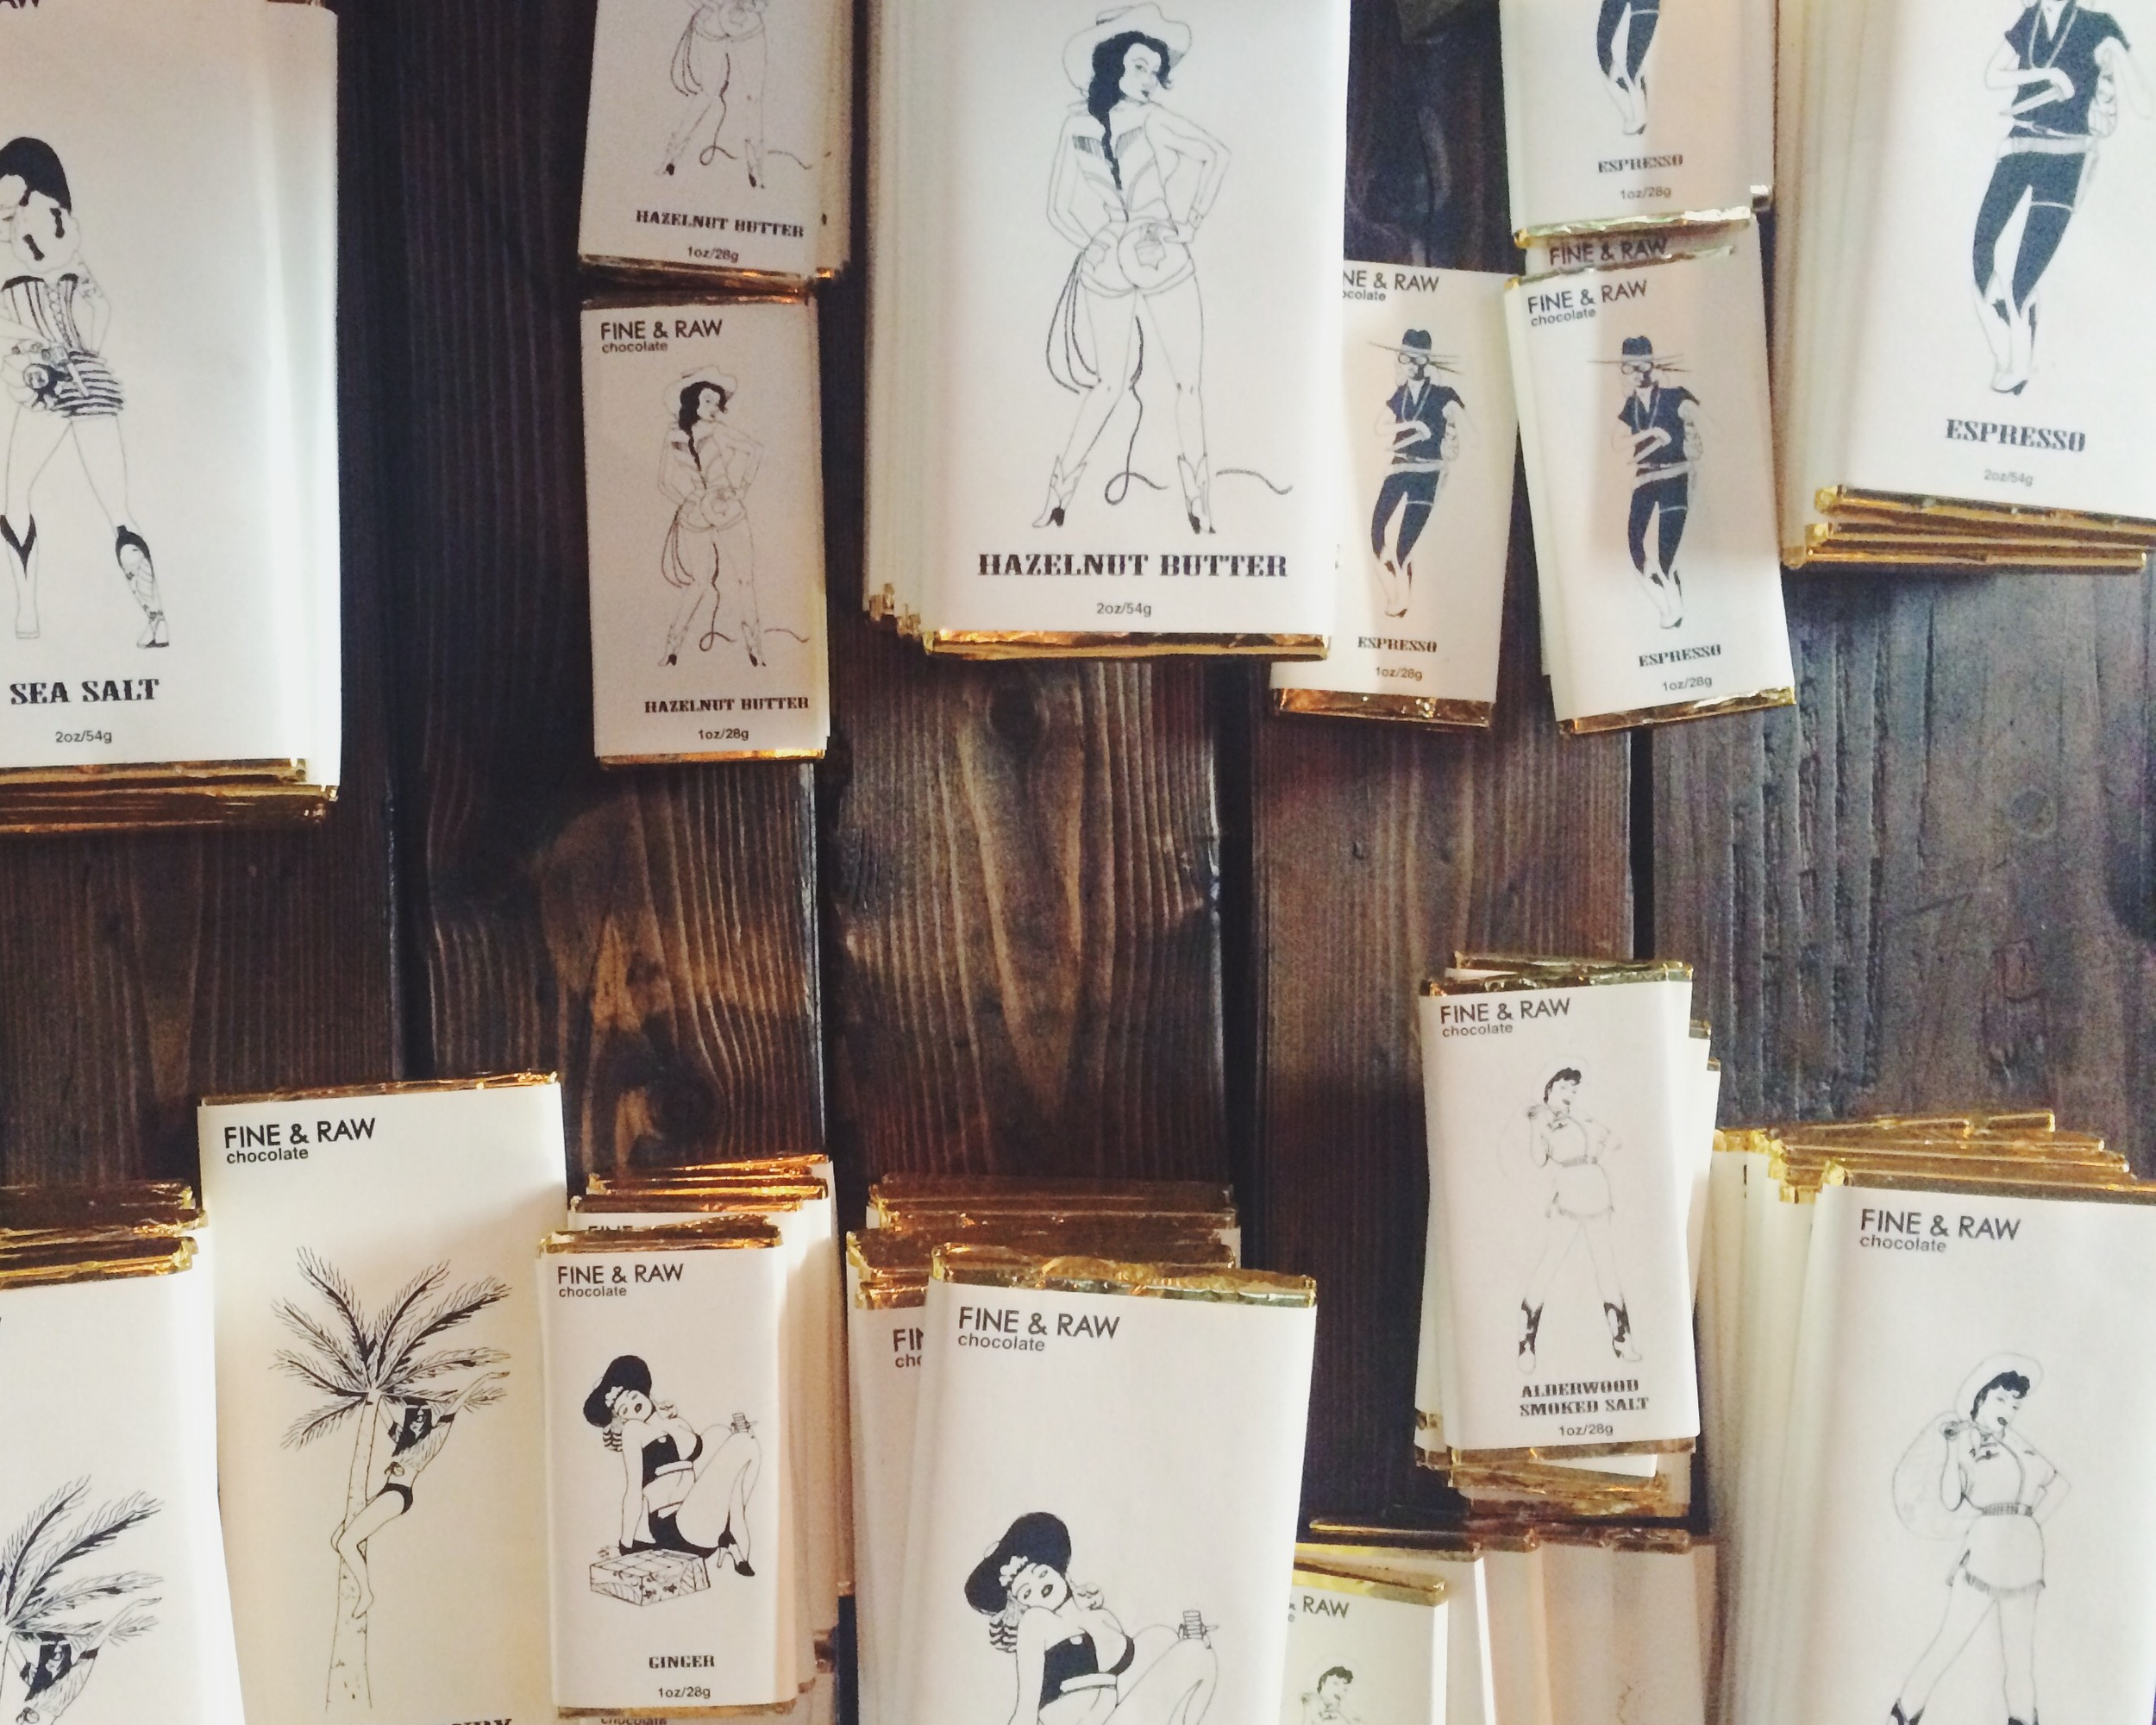 Loved the Fine + Raw Chocolate bar designs and their illustrations.